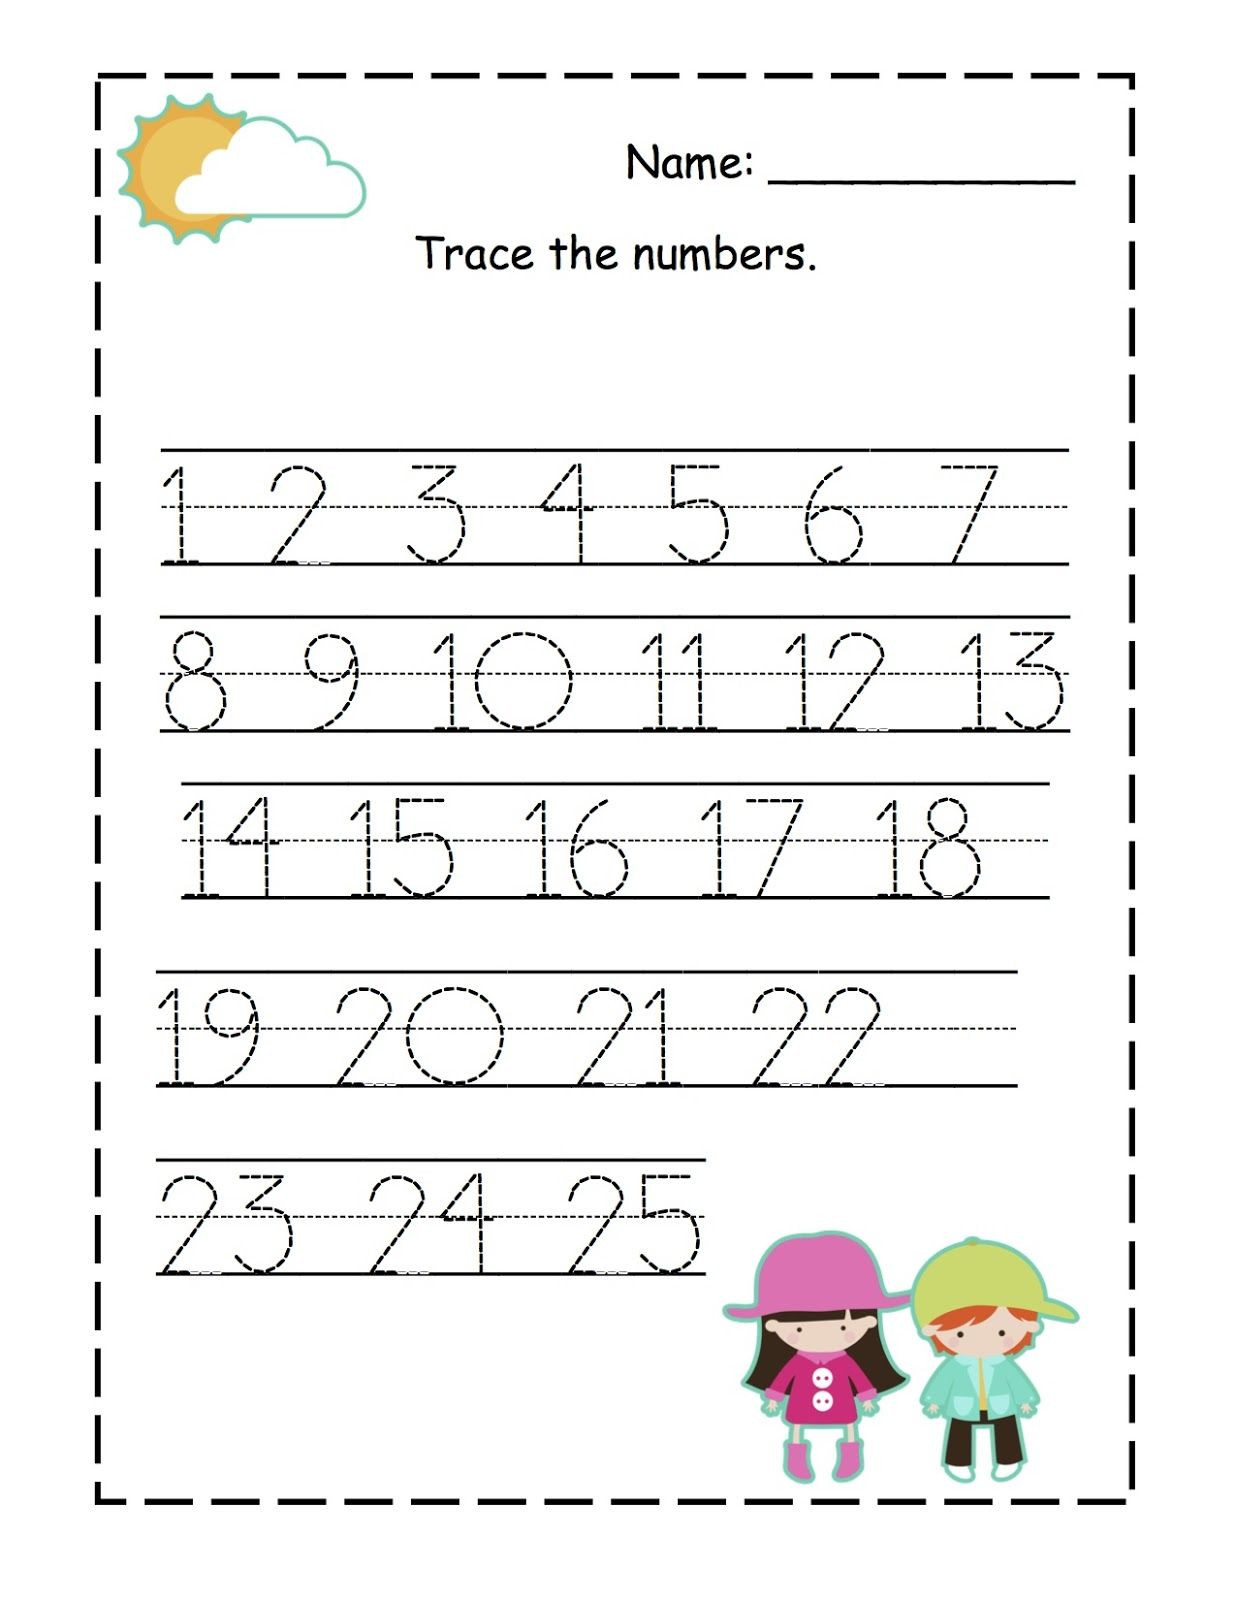 Free Printable Number Tracing Worksheets Preschool Printables Ace the Number From Owensfamily